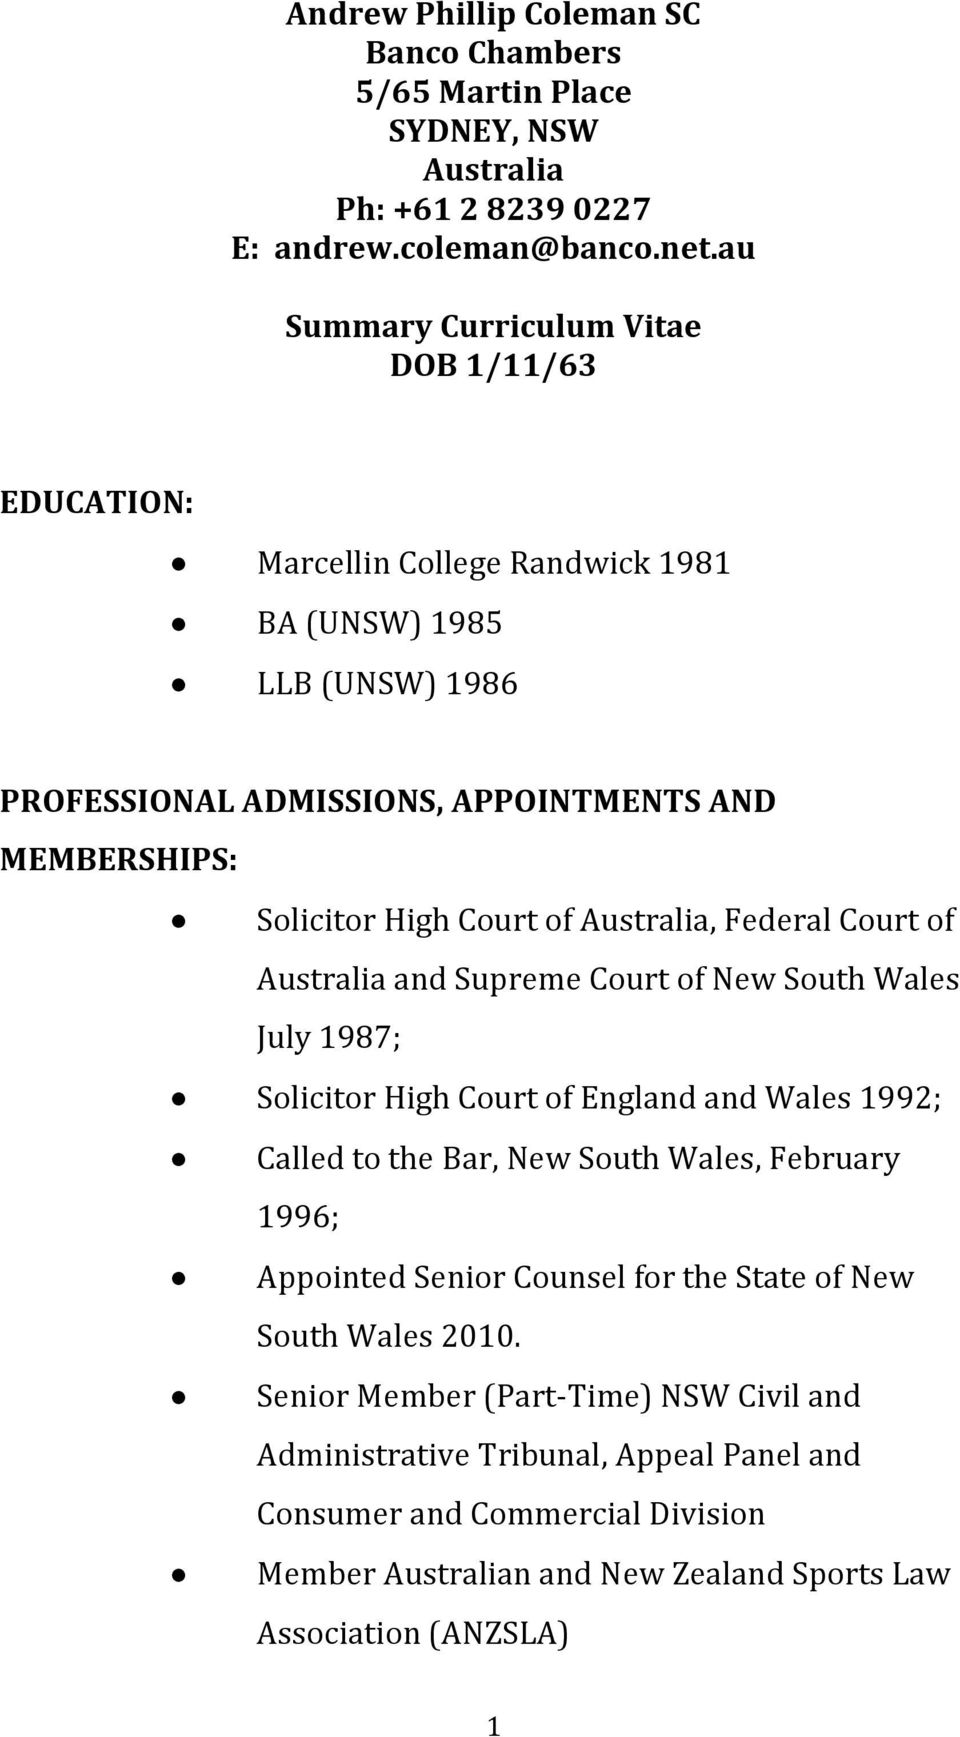 Court of Australia, Federal Court of Australia and Supreme Court of New South Wales July 1987; Solicitor High Court of England and Wales 1992; Called to the Bar, New South Wales, February